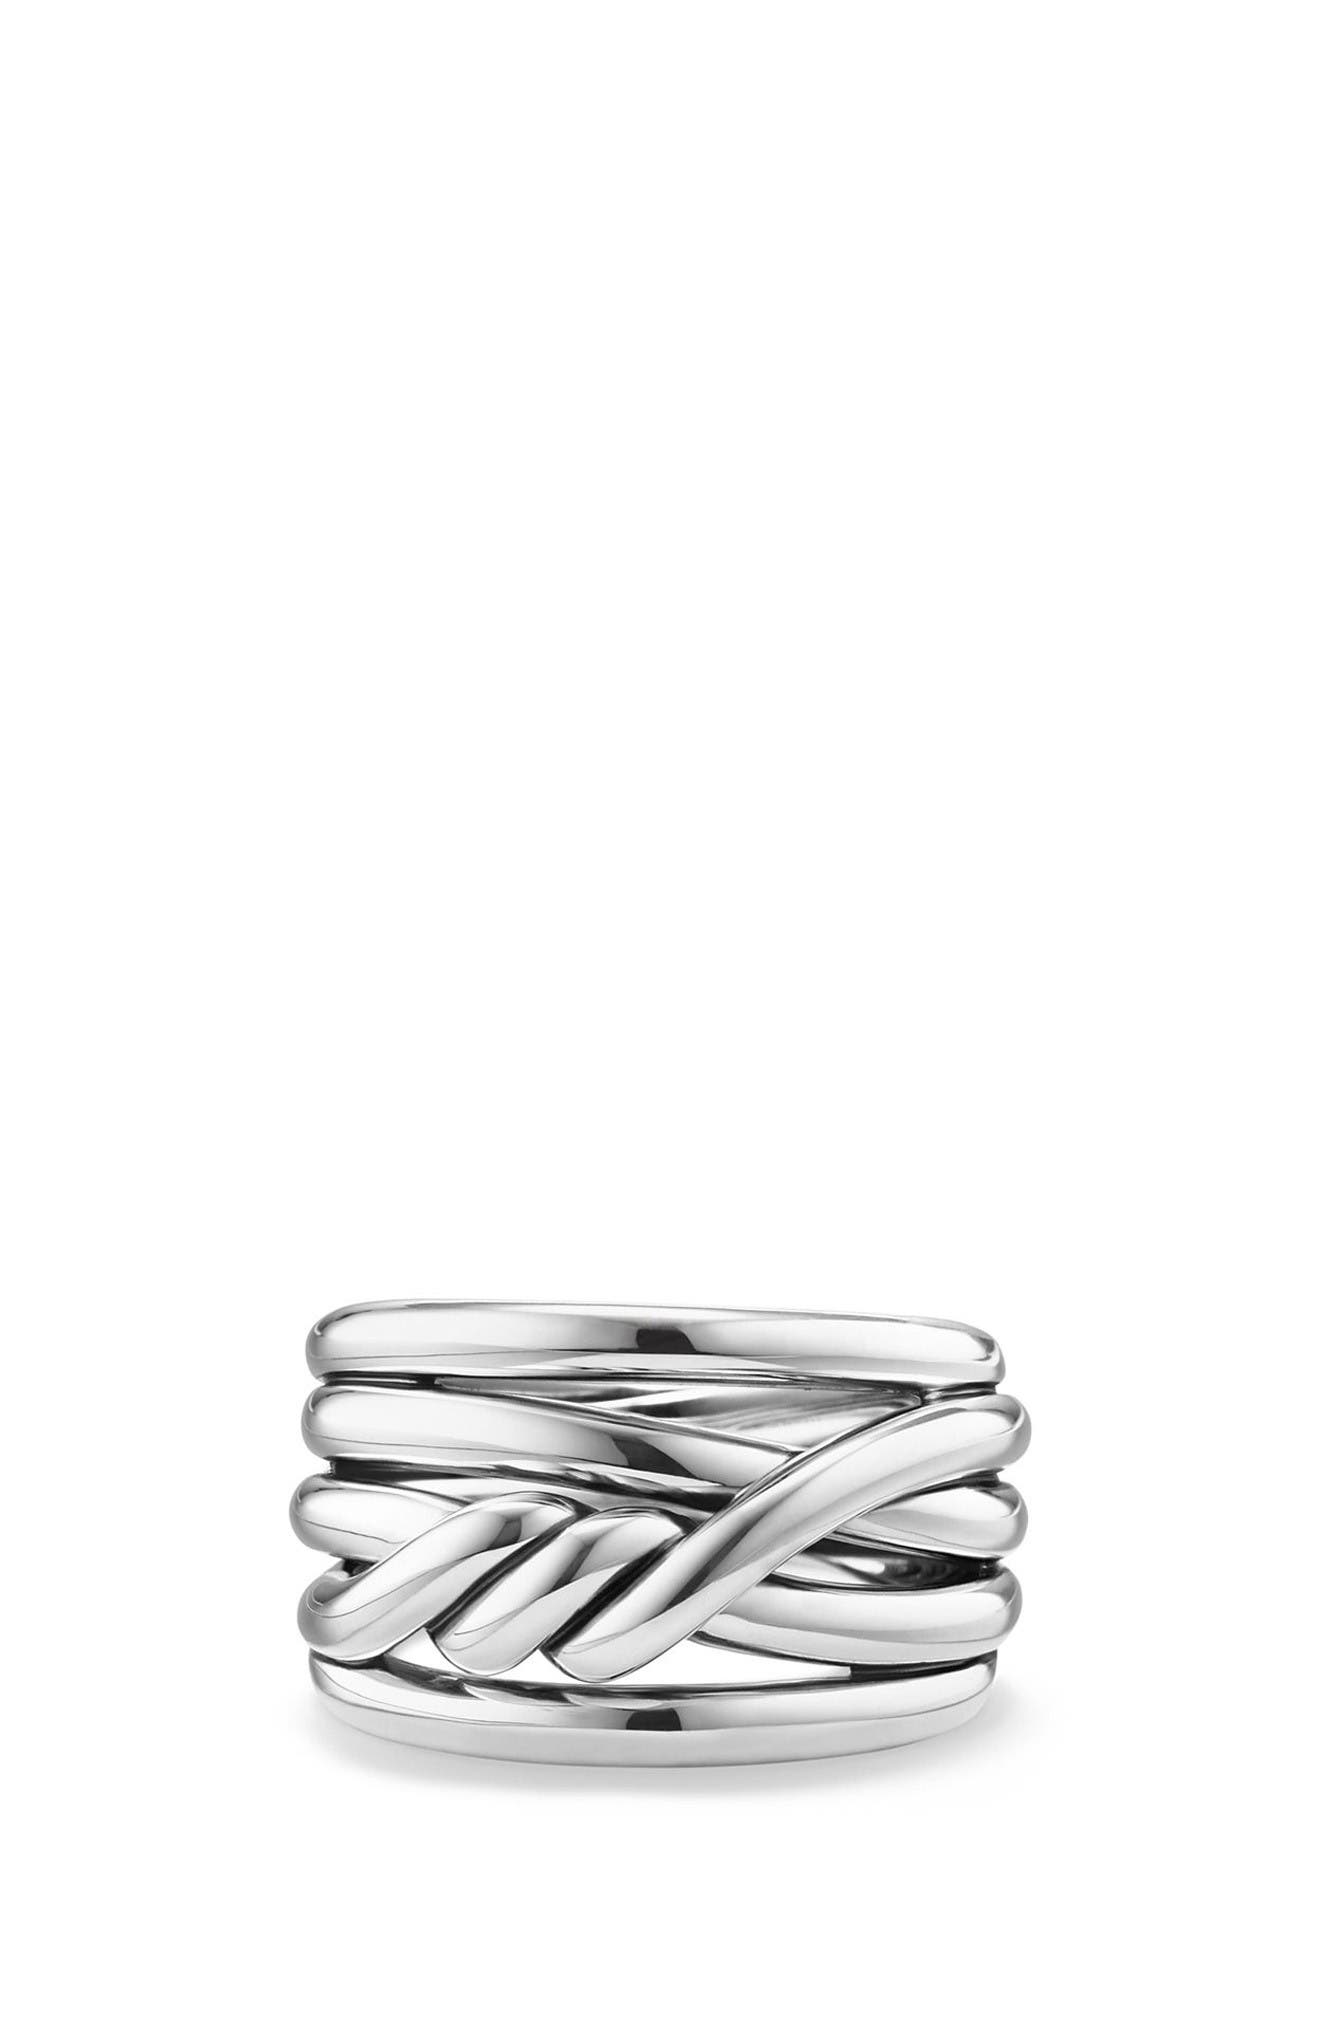 Main Image - David Yurman Continuance Ring